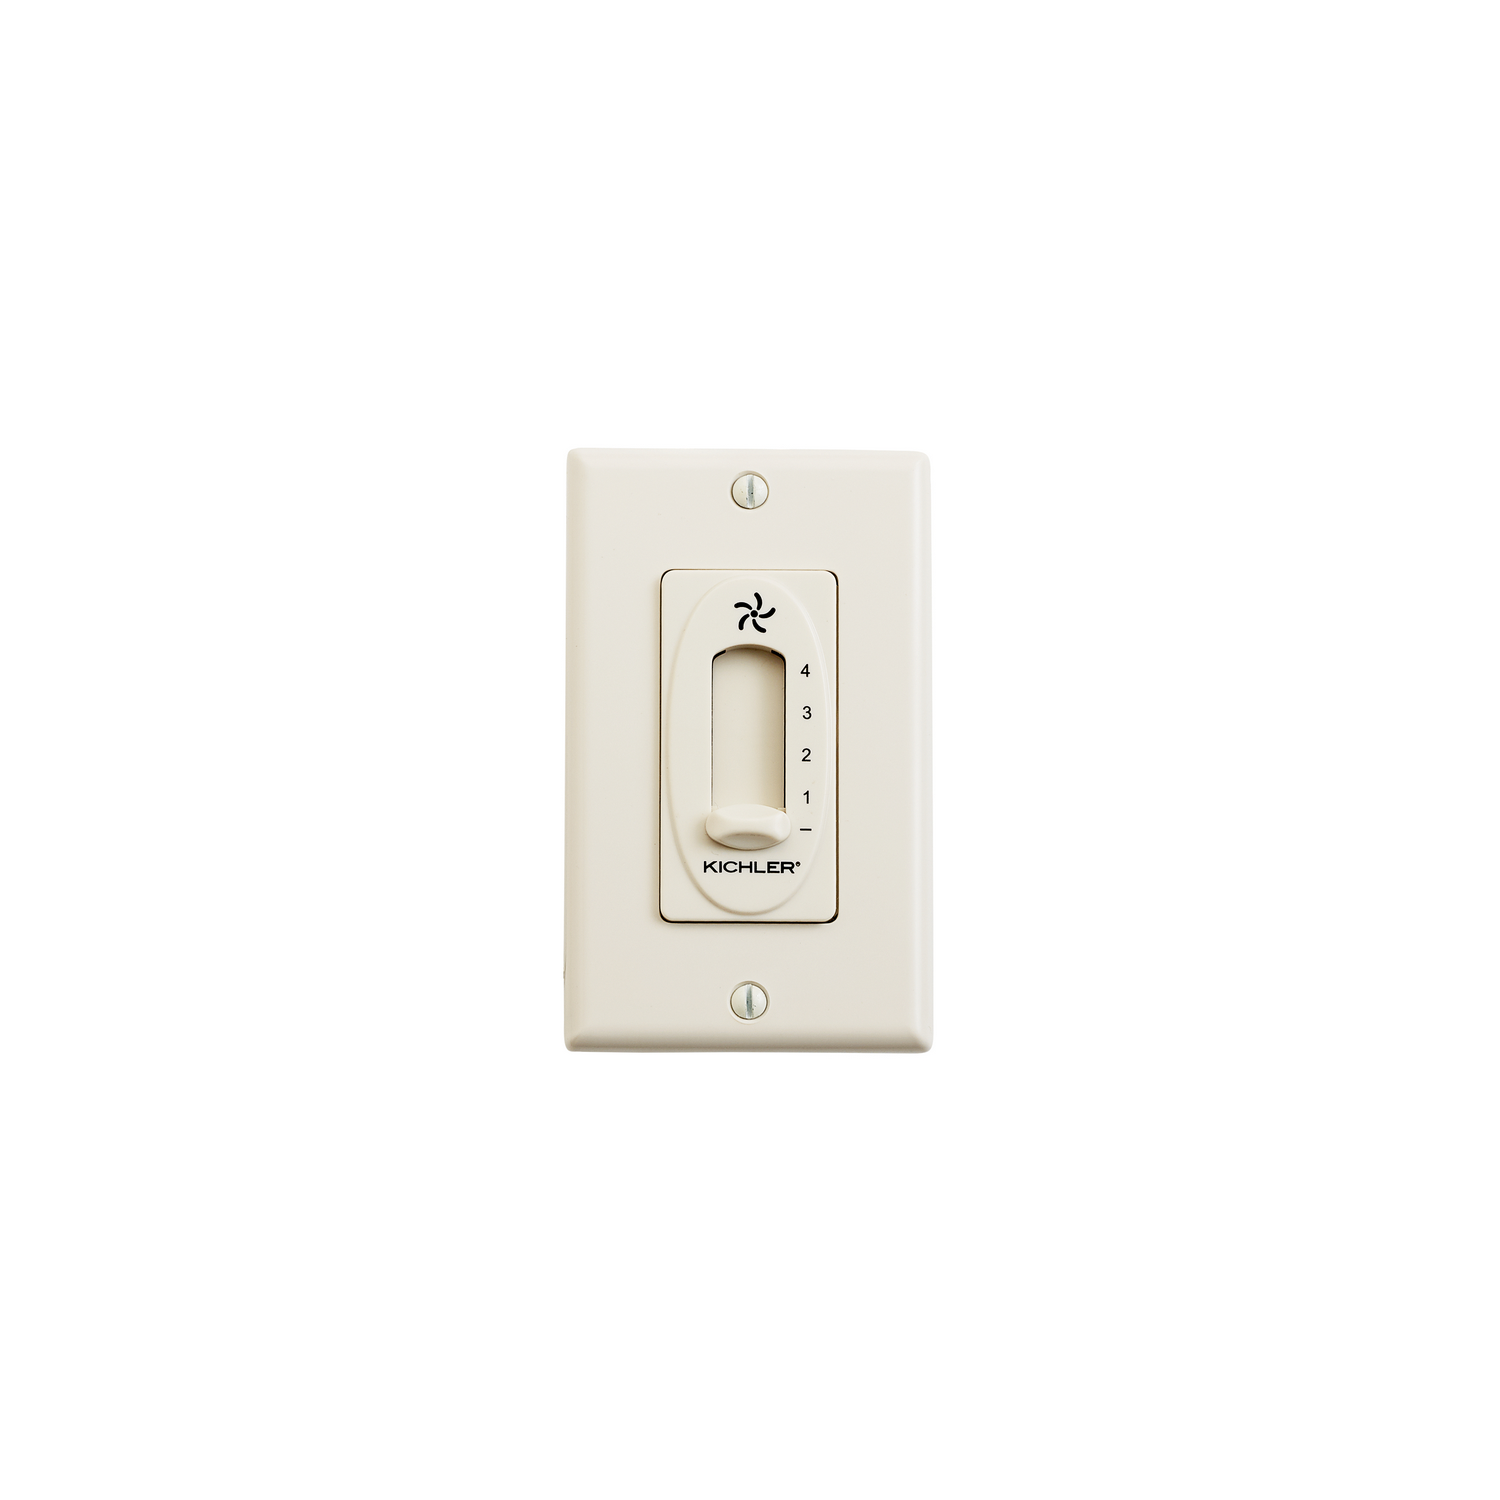 4 Speed Fan Slide Control from the Accessory collection by Kichler 337012ALM